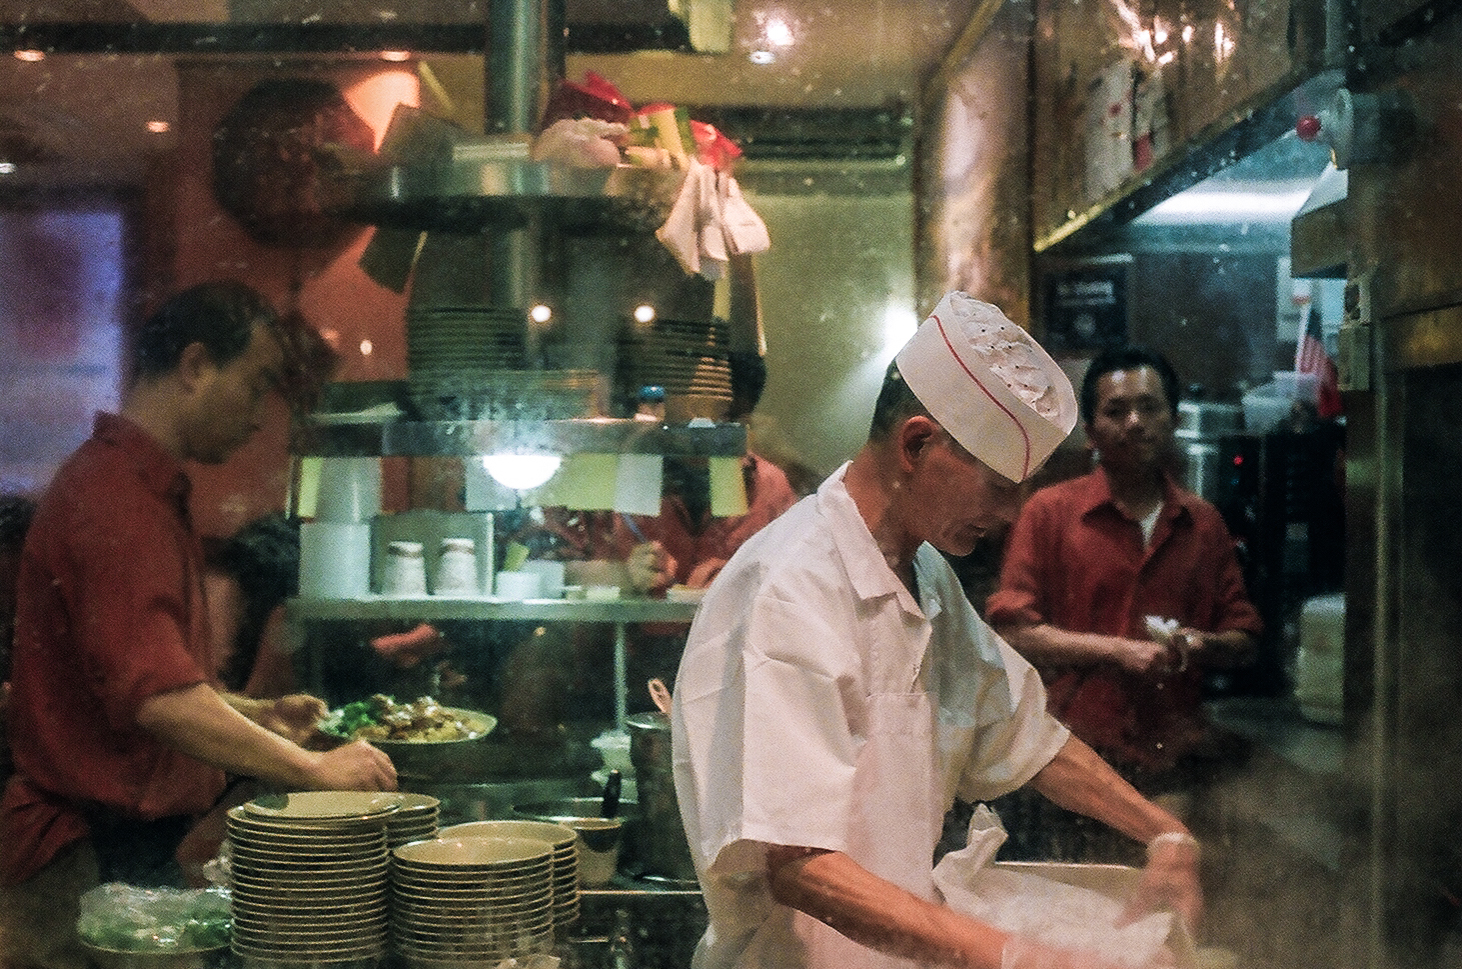 View inside Chinatown Restaurant, Manhattan_Film Photography_NYC_Joe Curry Photography_2018.jpg